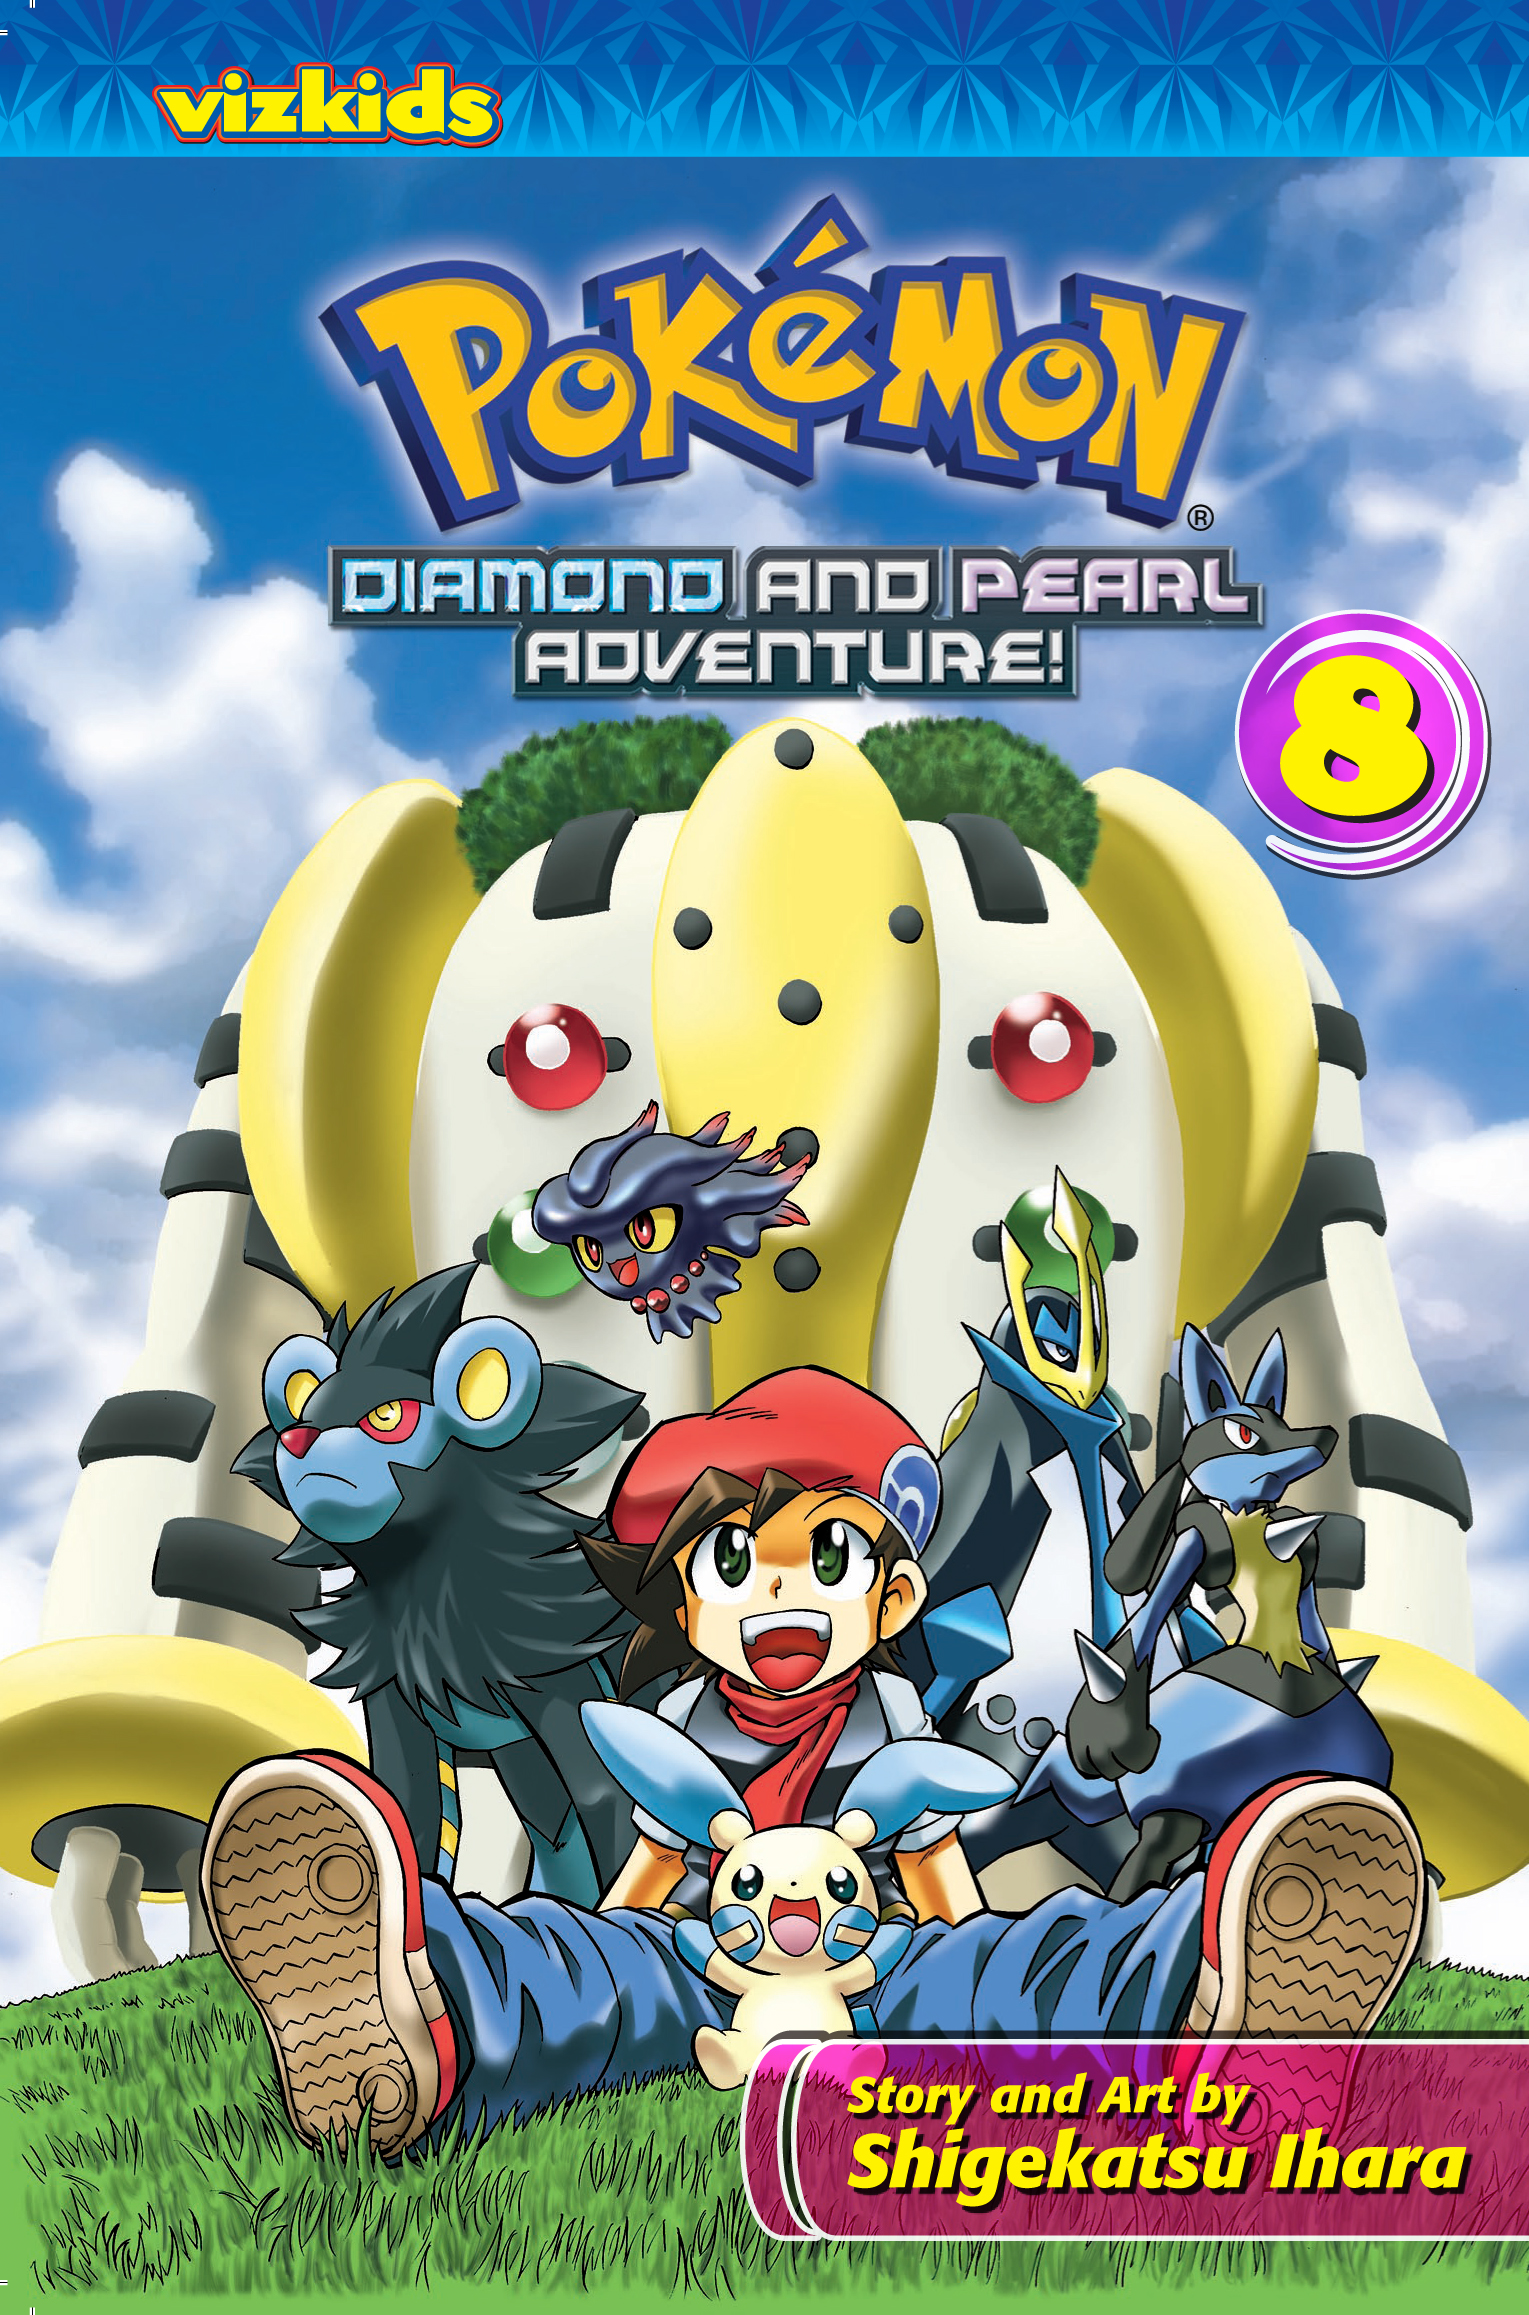 pokémon diamond and pearl adventure!: volume 8 | pokémon wiki